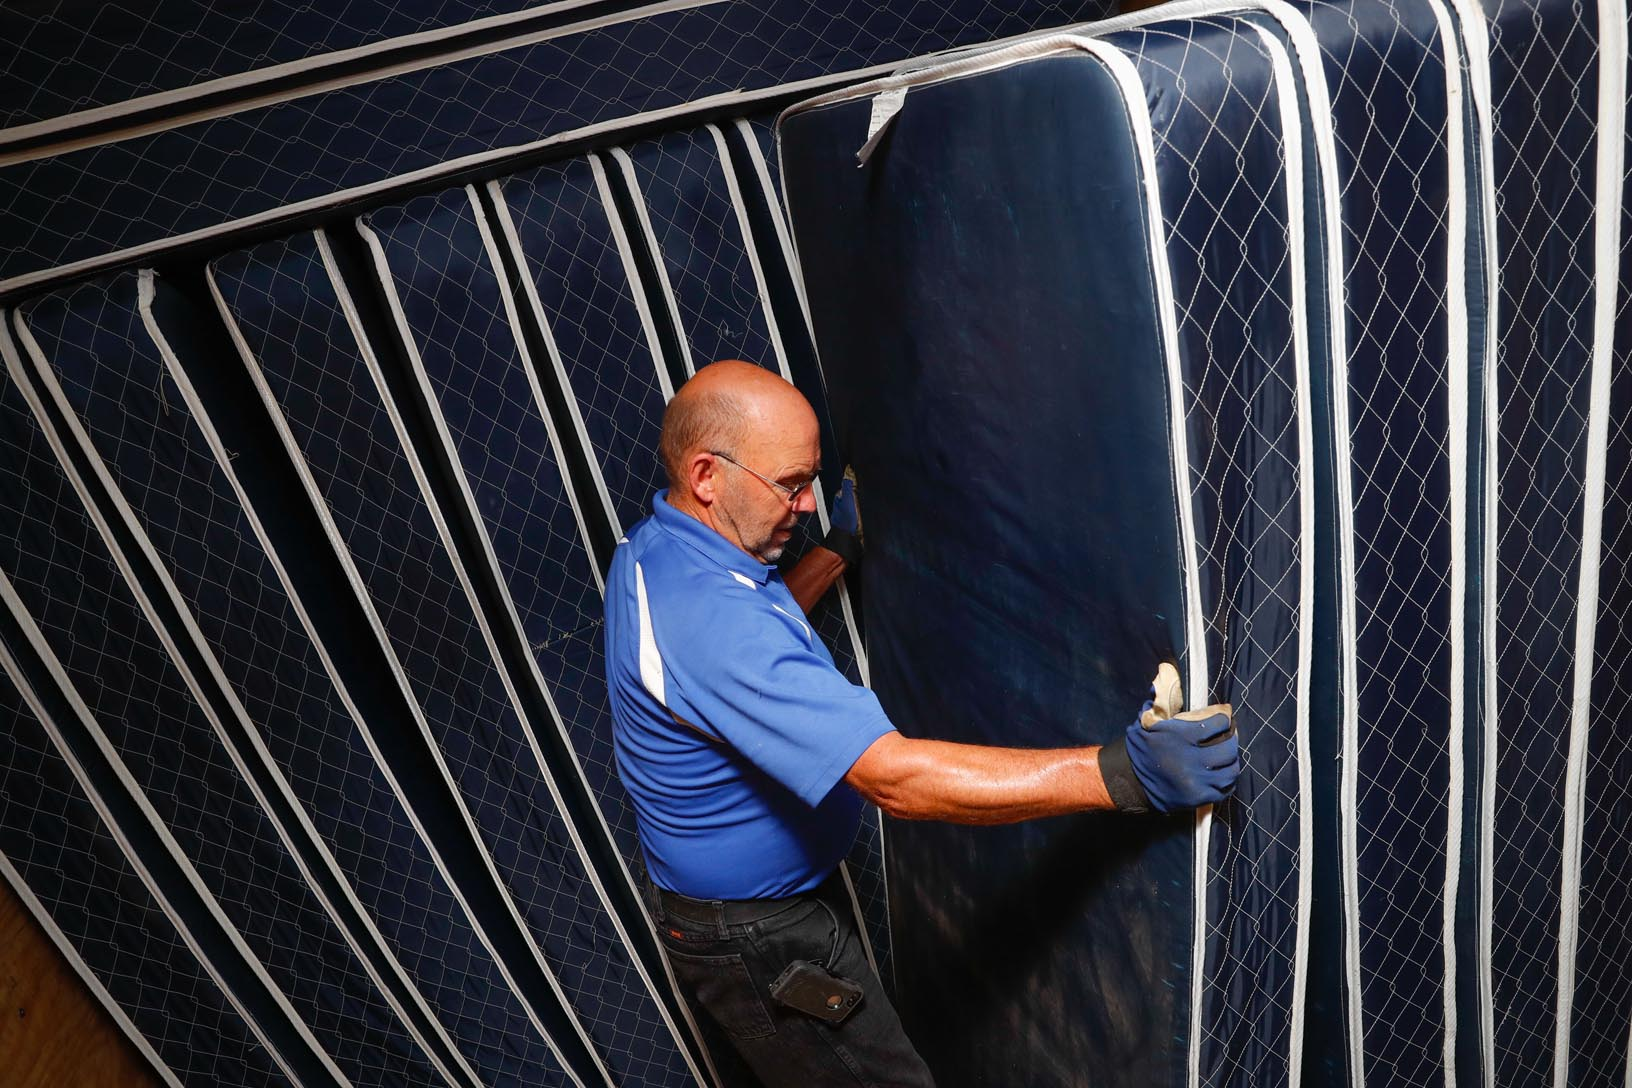 Don Wellensiek, surplus inventory manager with UNK Facilities Management, stacks mattresses inside a semitrailer headed to Orphan Grain Train in Norfolk. UNK donated 335 used mattresses to charitable groups, including Orphan Grain Train, as part of the inventory replacement process for three residence halls. (Photo by Corbey R. Dorsey, UNK Communications)